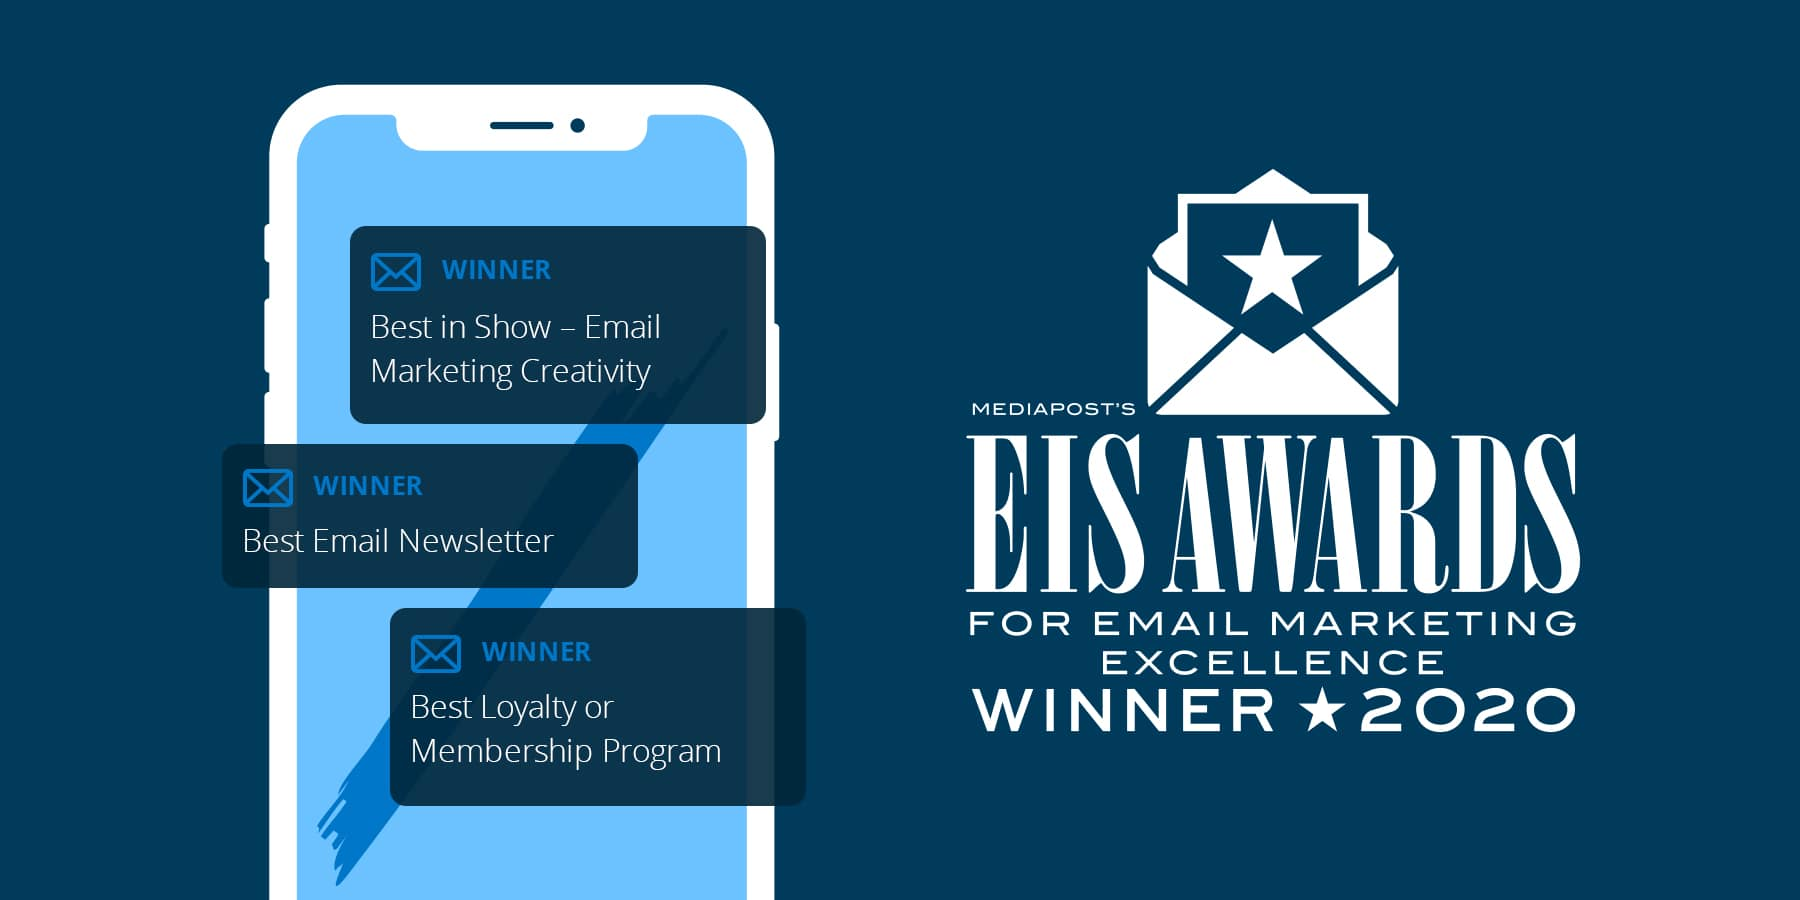 MediaPost's EIS Awards for Email Marketing Excellence - Winner 2020